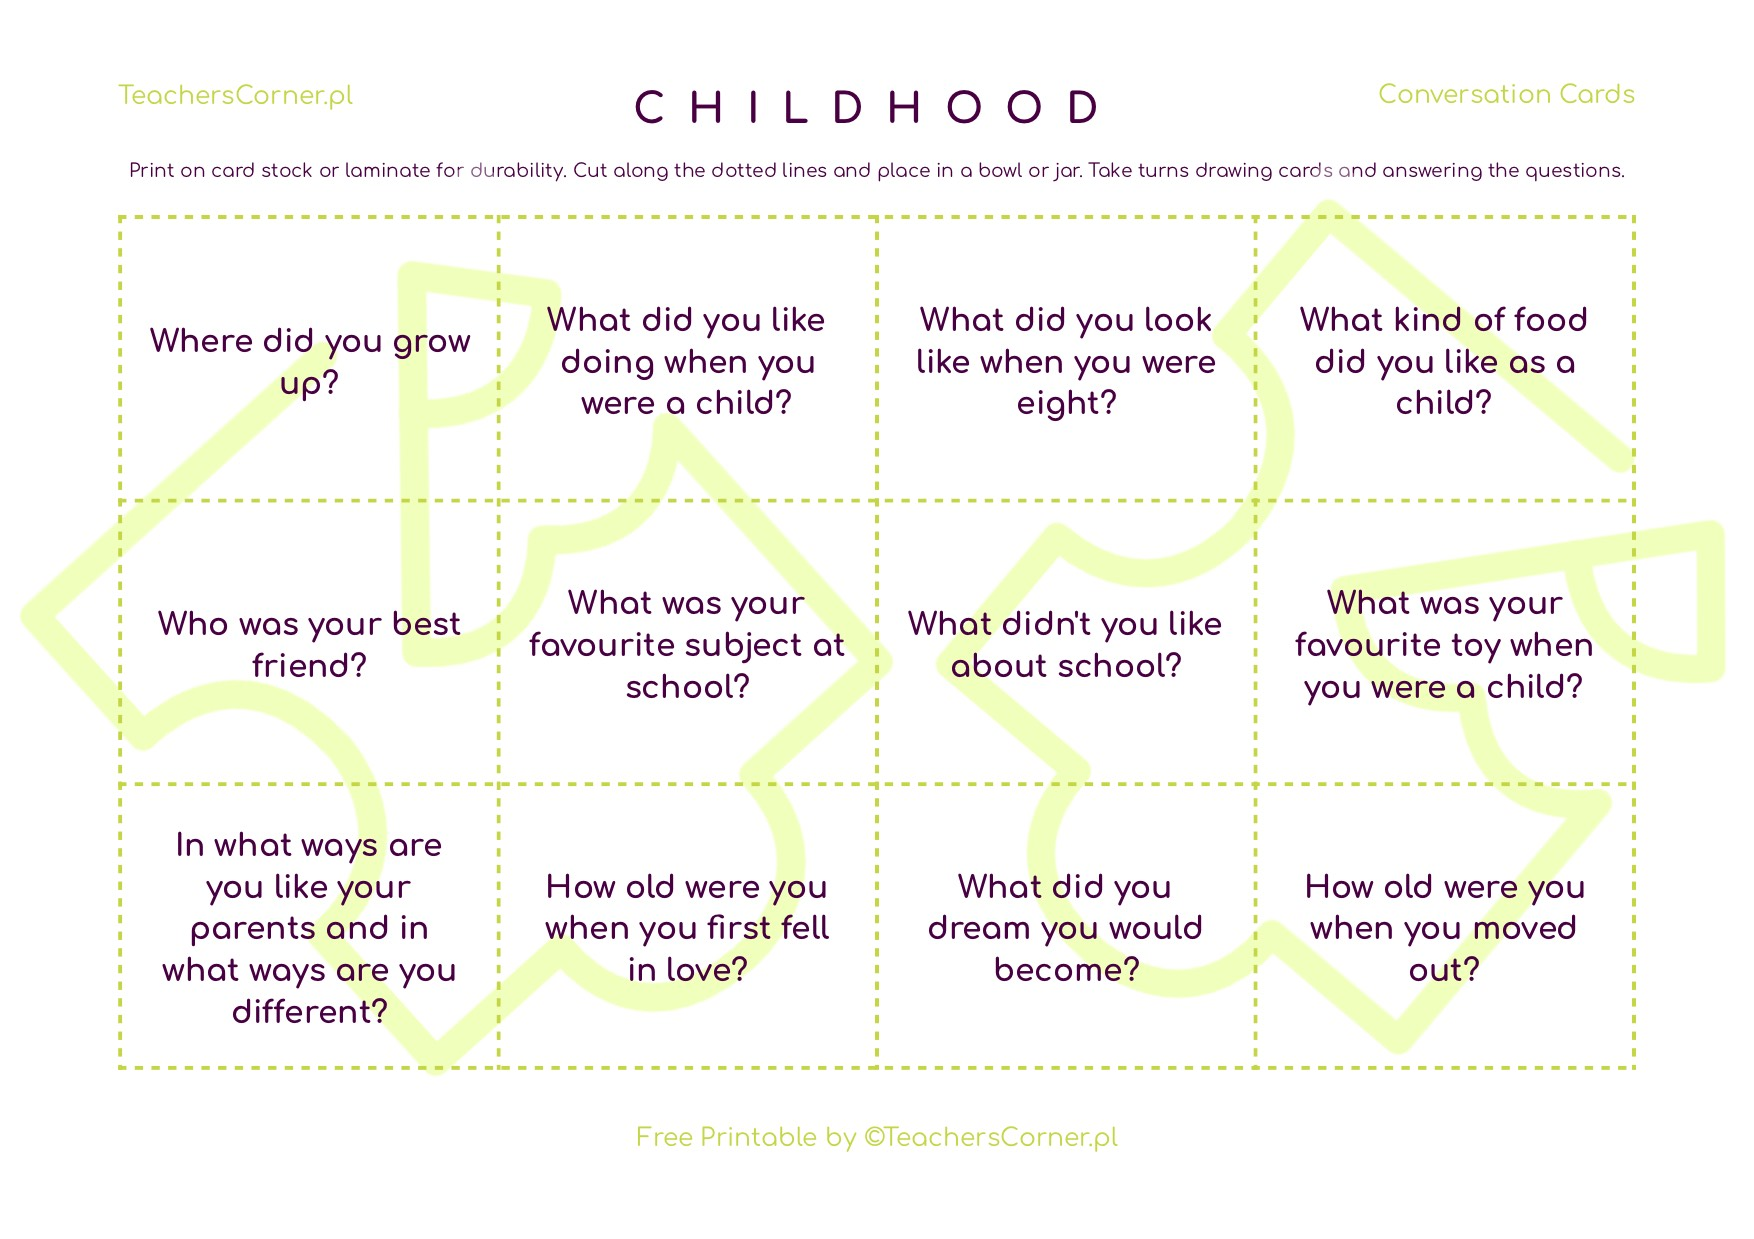 childhood questions conversation cards